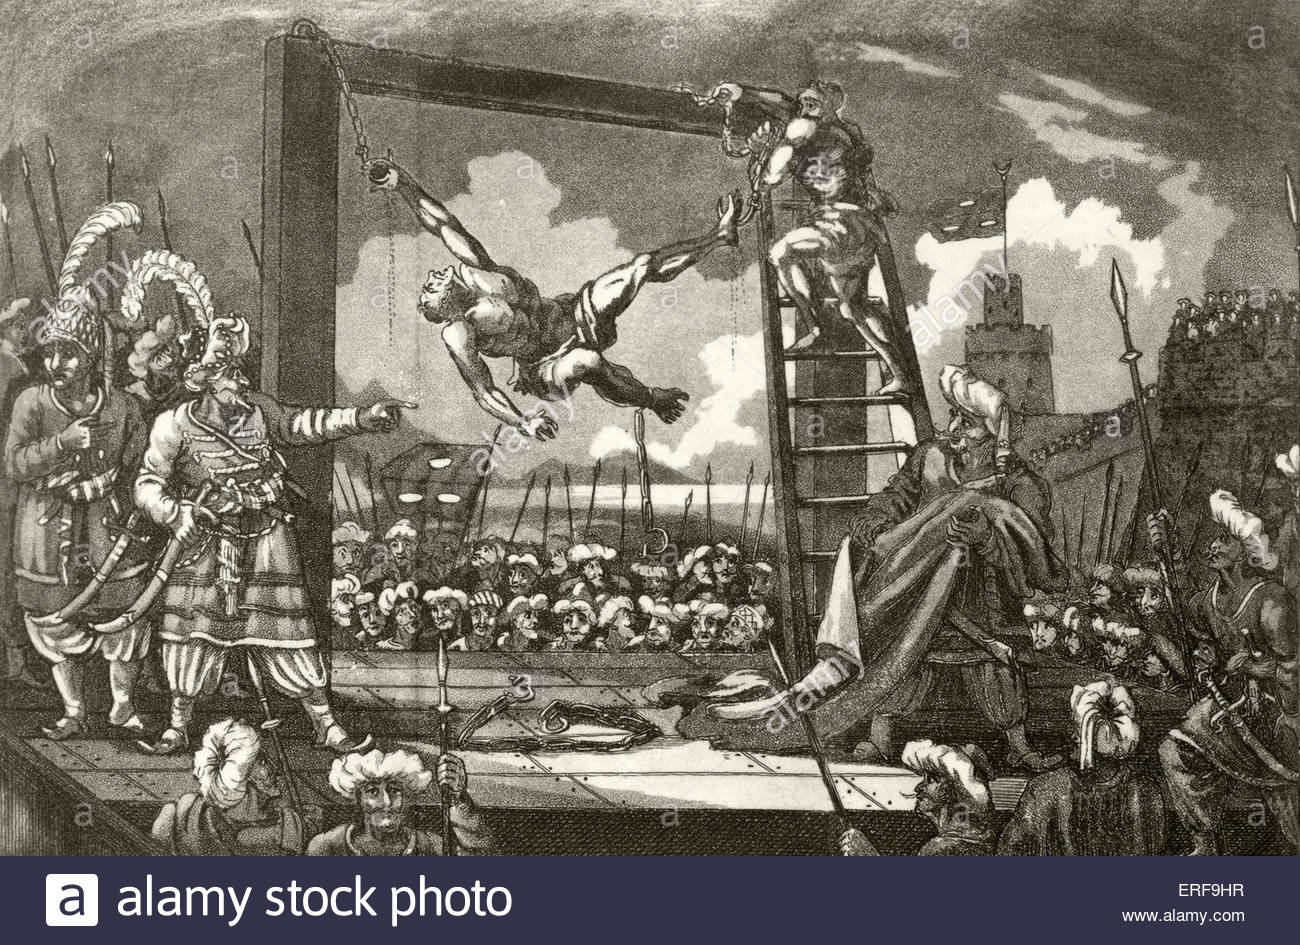 piracy of the 19th century Lycian pirates had not been stopped, till the patrols of the british warships suppressed piracy in the 18th a 19th century cilician pirates were famous, too cilicia was also on the territory of today's turkey, on the southern shore of asia minor.